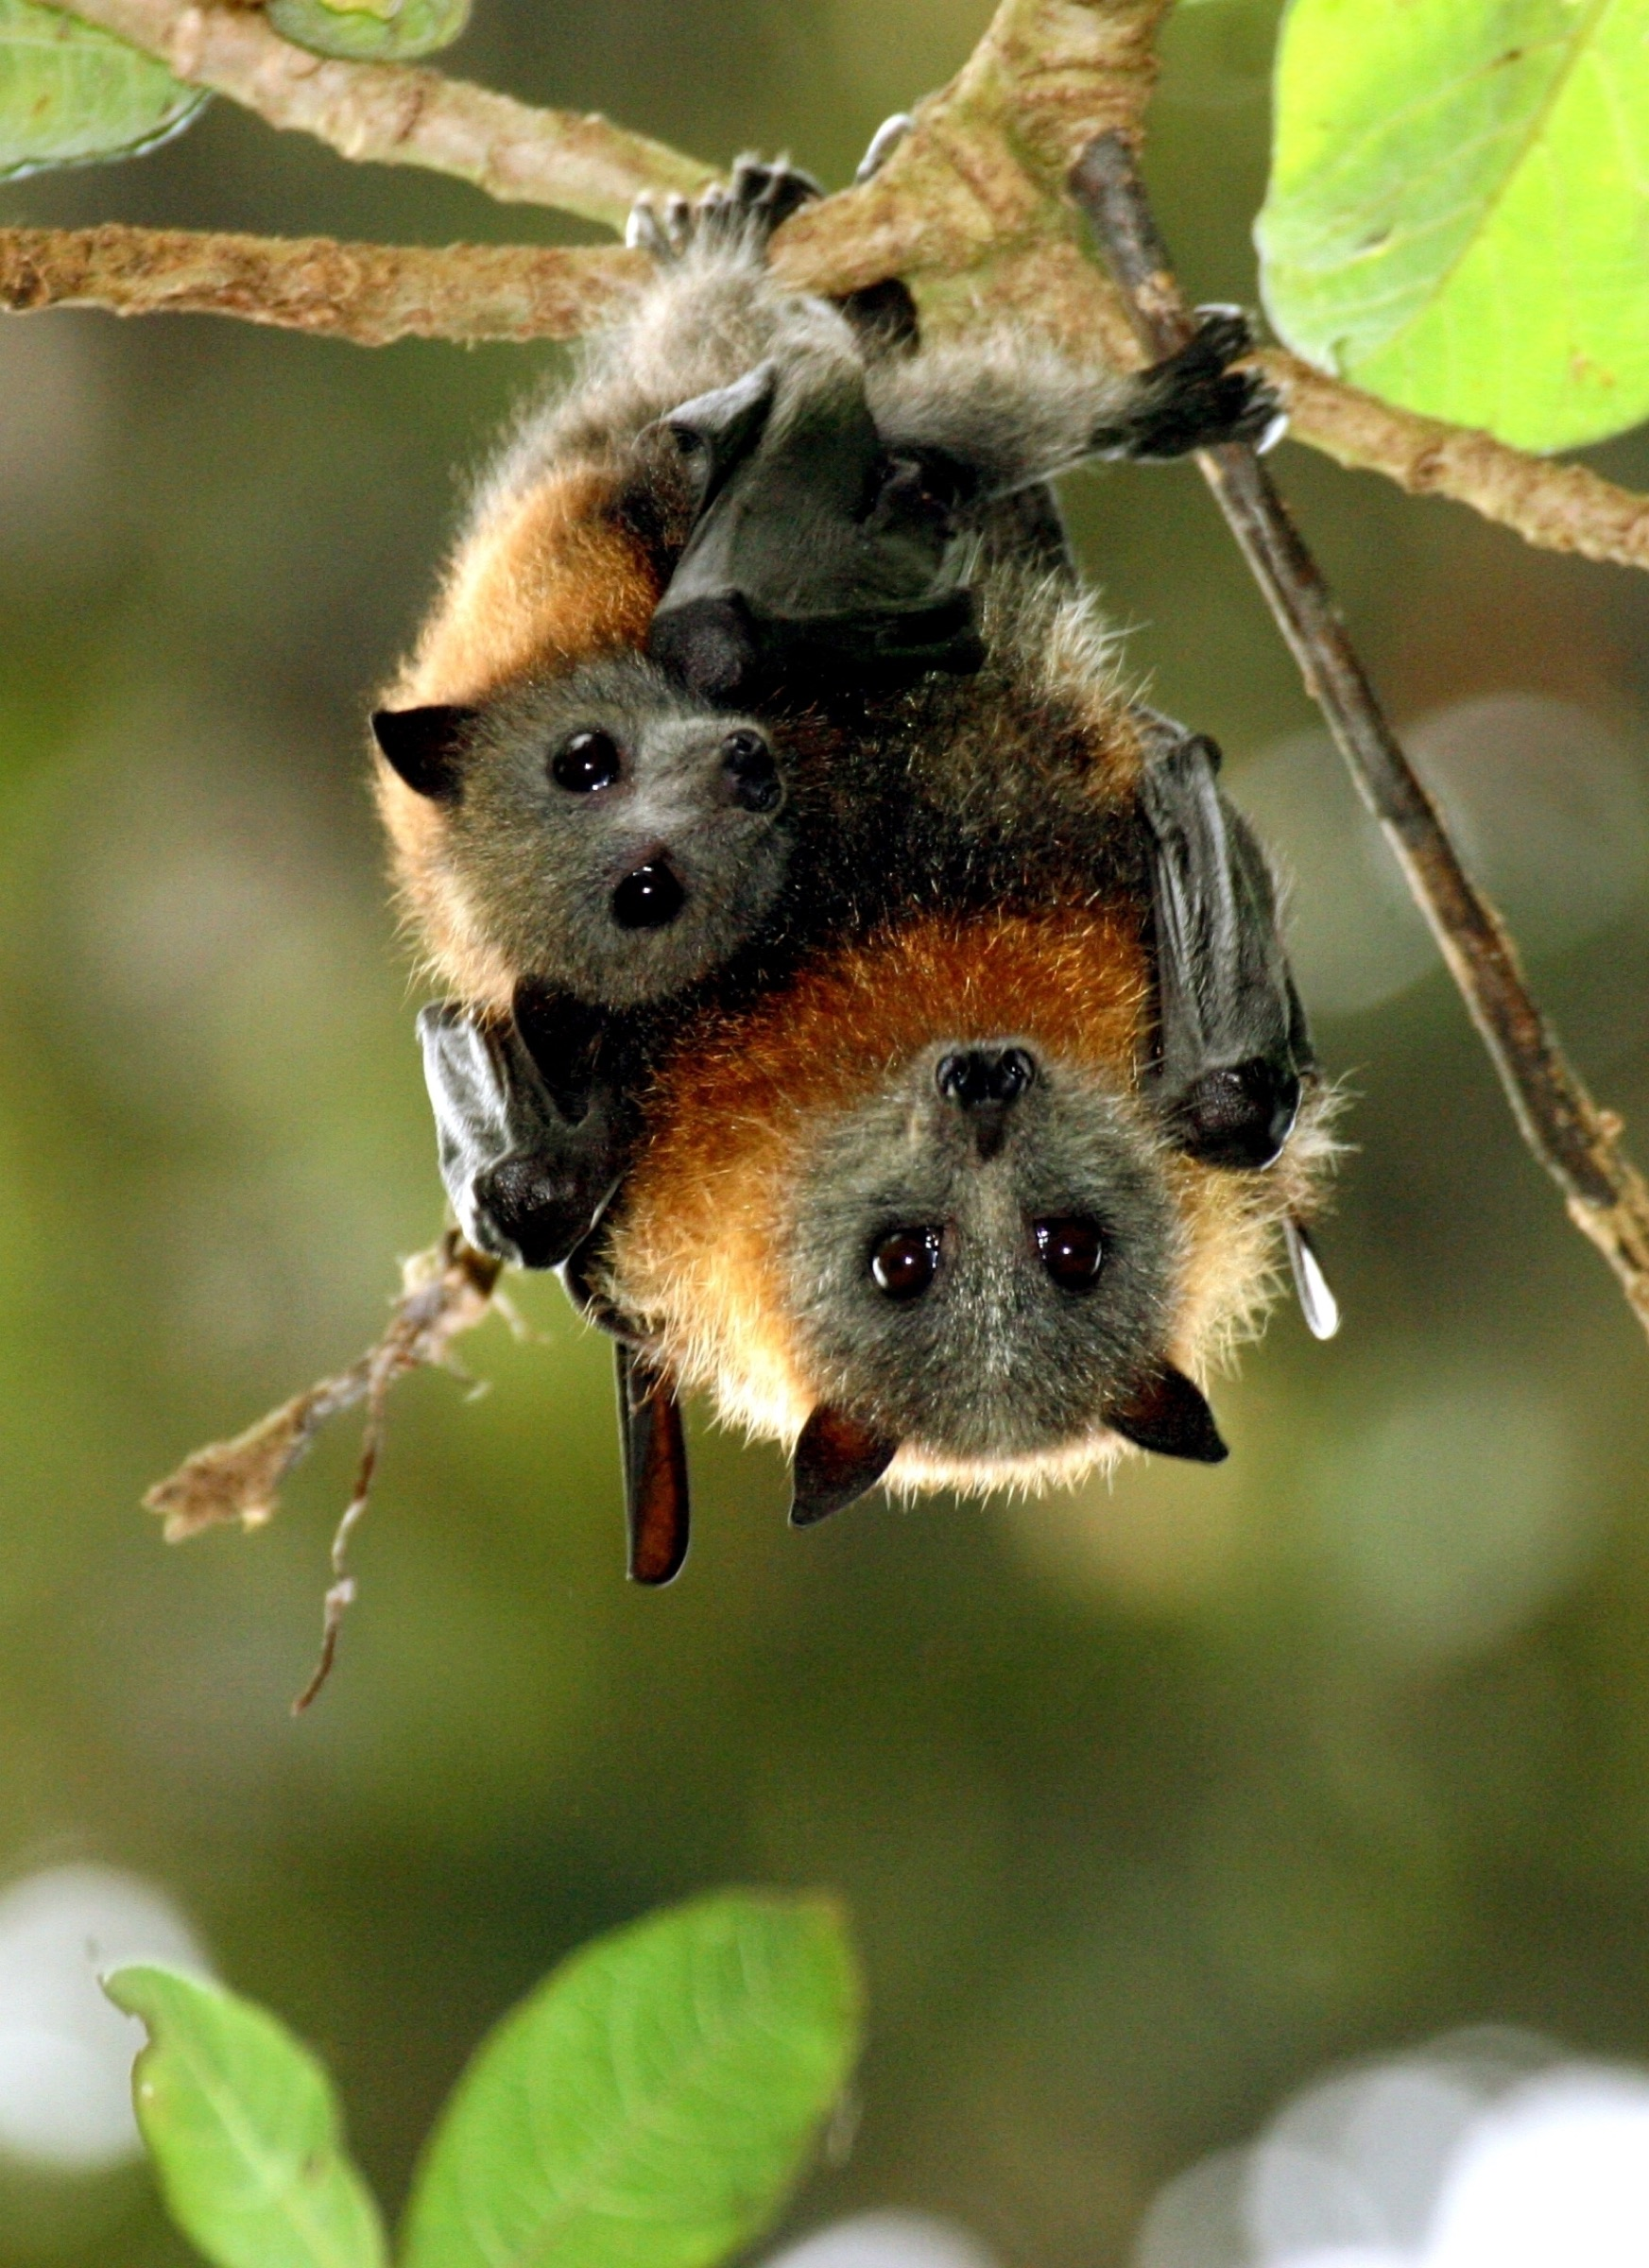 A young grey-headed flying fox, and a potential source of a wide variety of viruses, clings to its mother in a forest of Queensland, Australia. Photograph by Vivien Jones